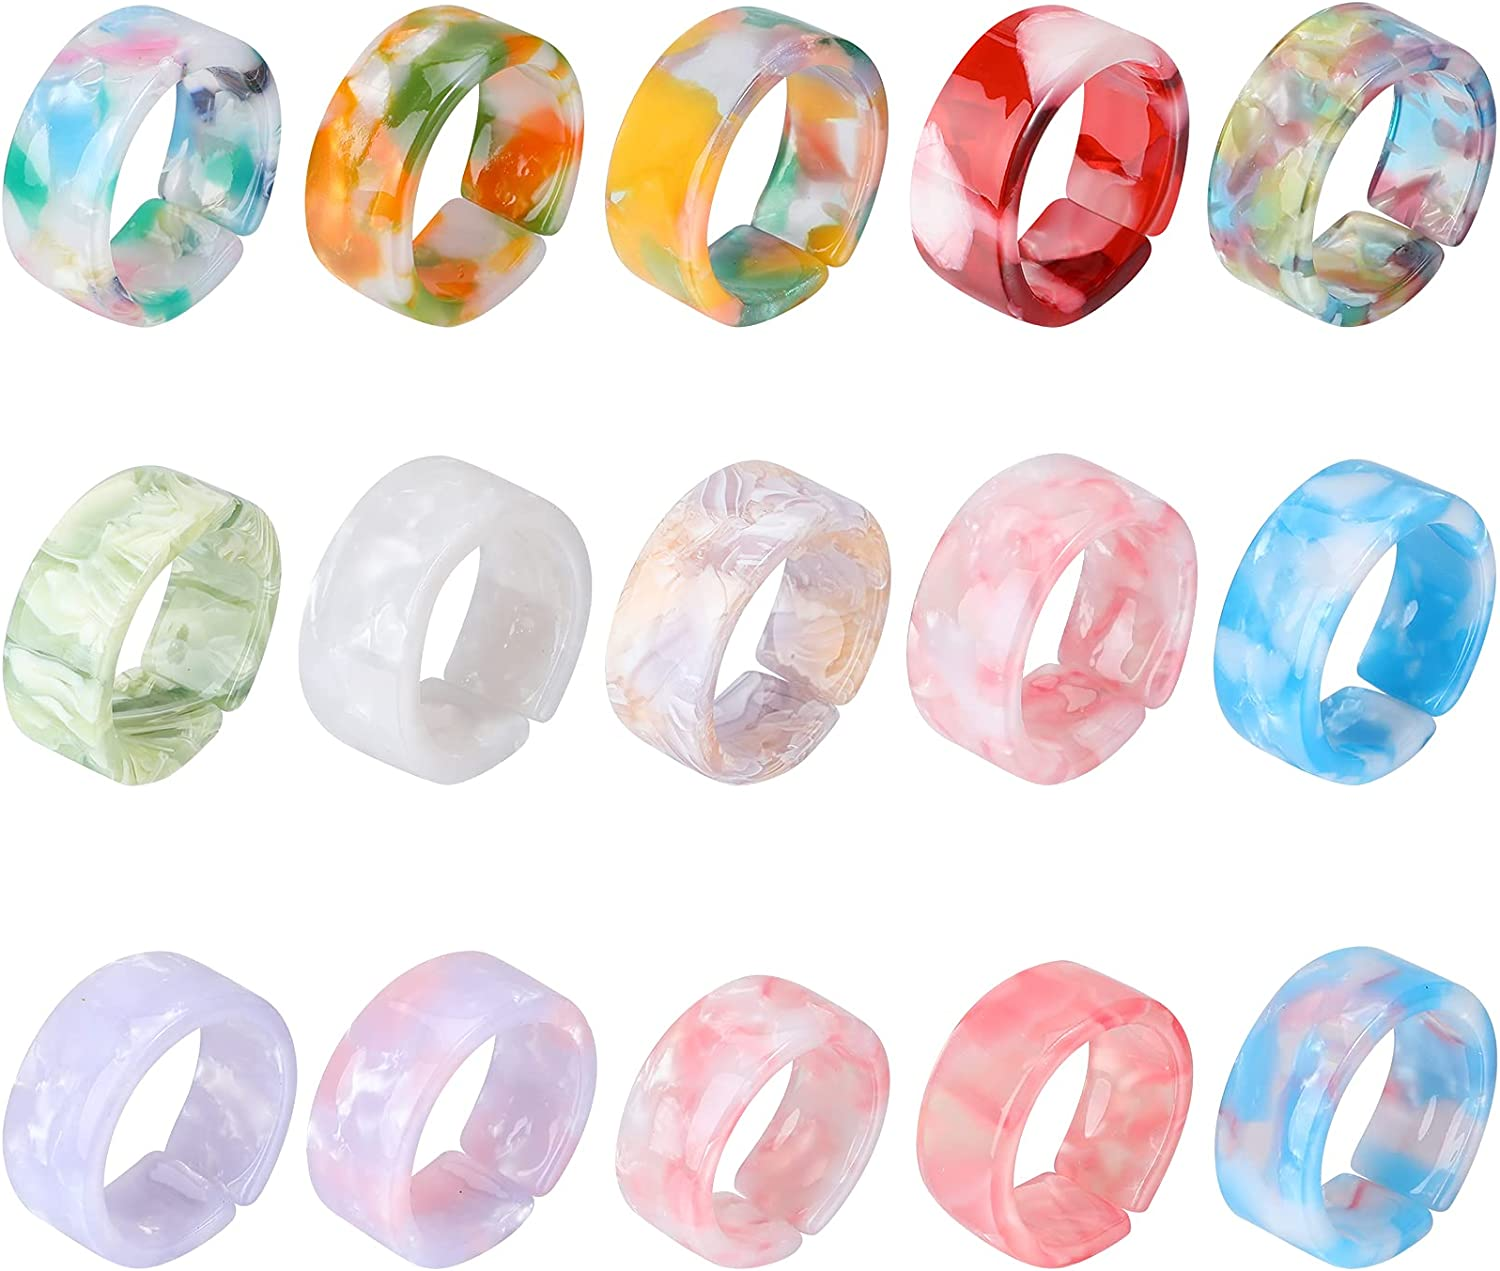 15 Pieces Resin Rings Selling Discount mail order rankings Acrylic Open Set Colorful Adjustable